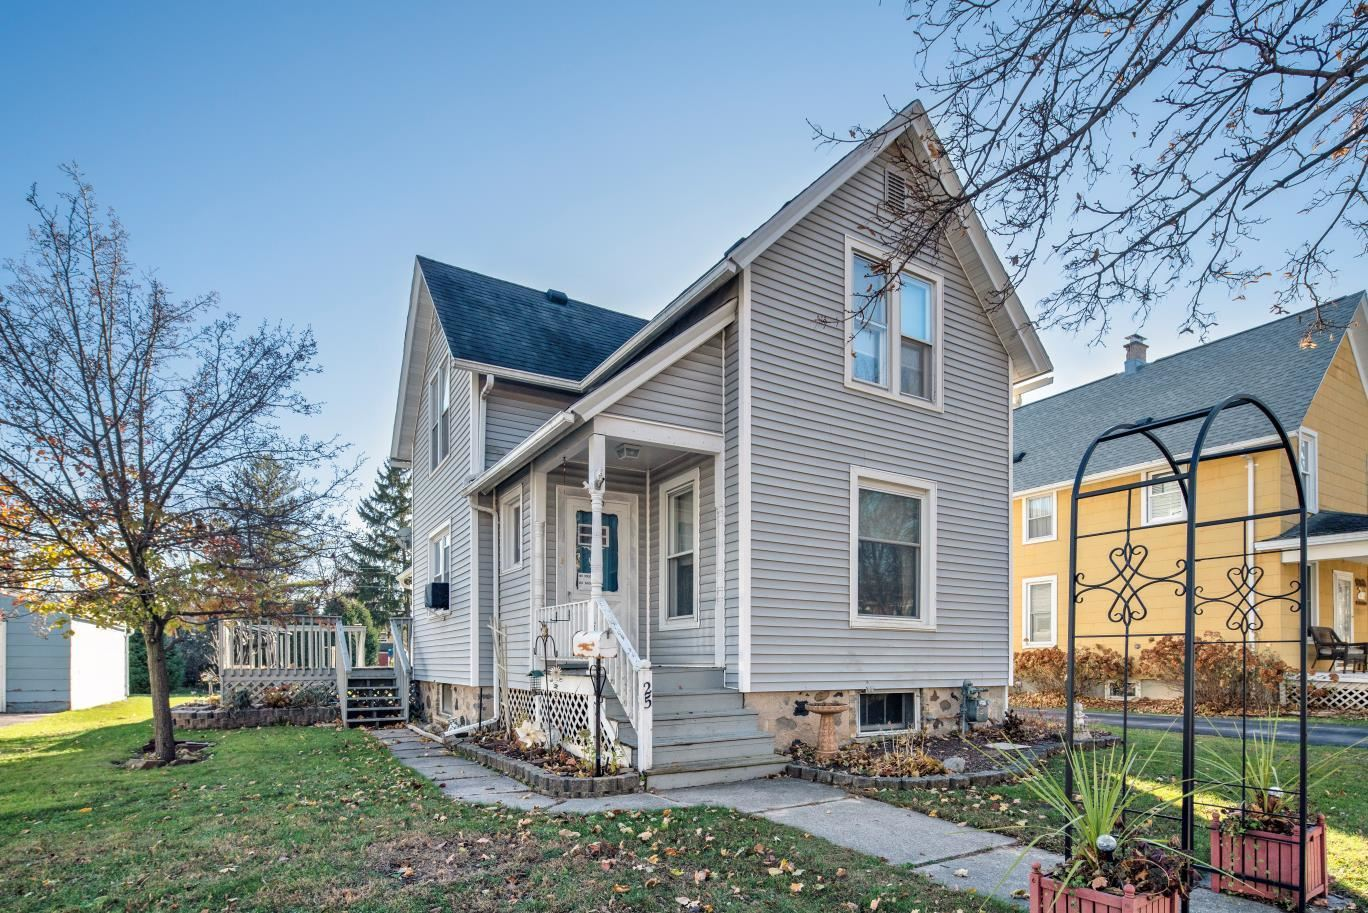 25 Edna St, Plymouth, WI 53073 - #: 1717608